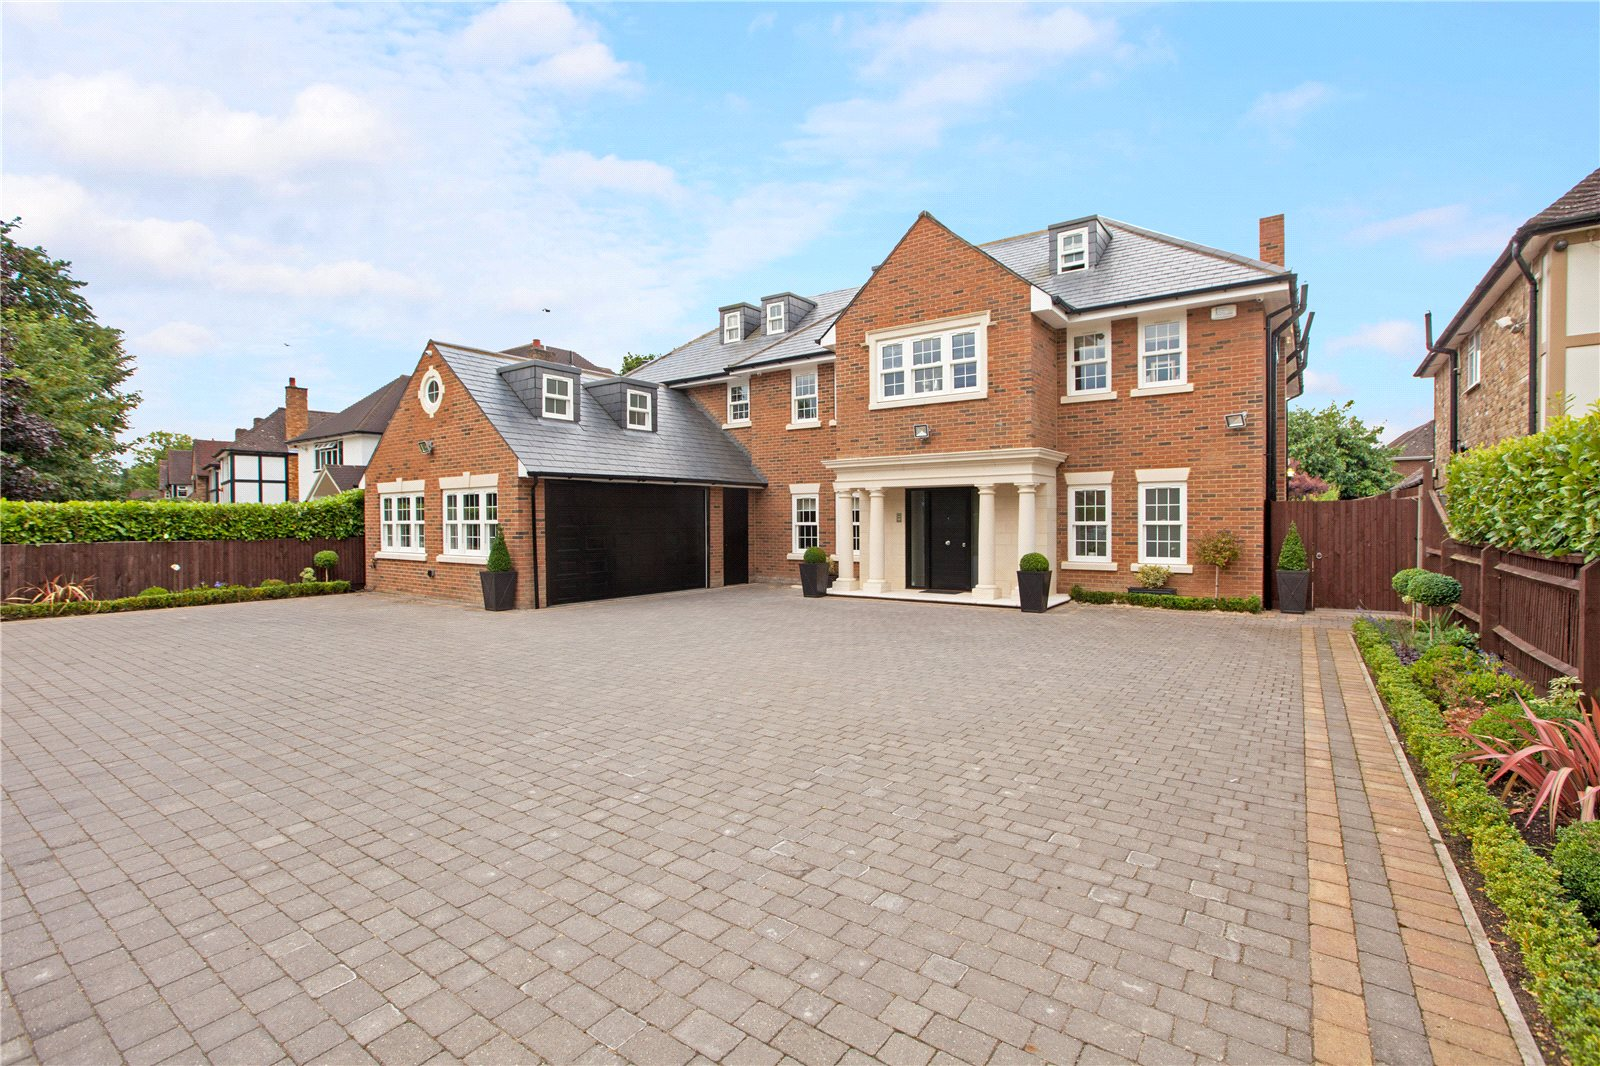 Villa per Vendita alle ore Dukes Wood Drive, Gerrards Cross, Buckinghamshire, SL9 Gerrards Cross, Inghilterra